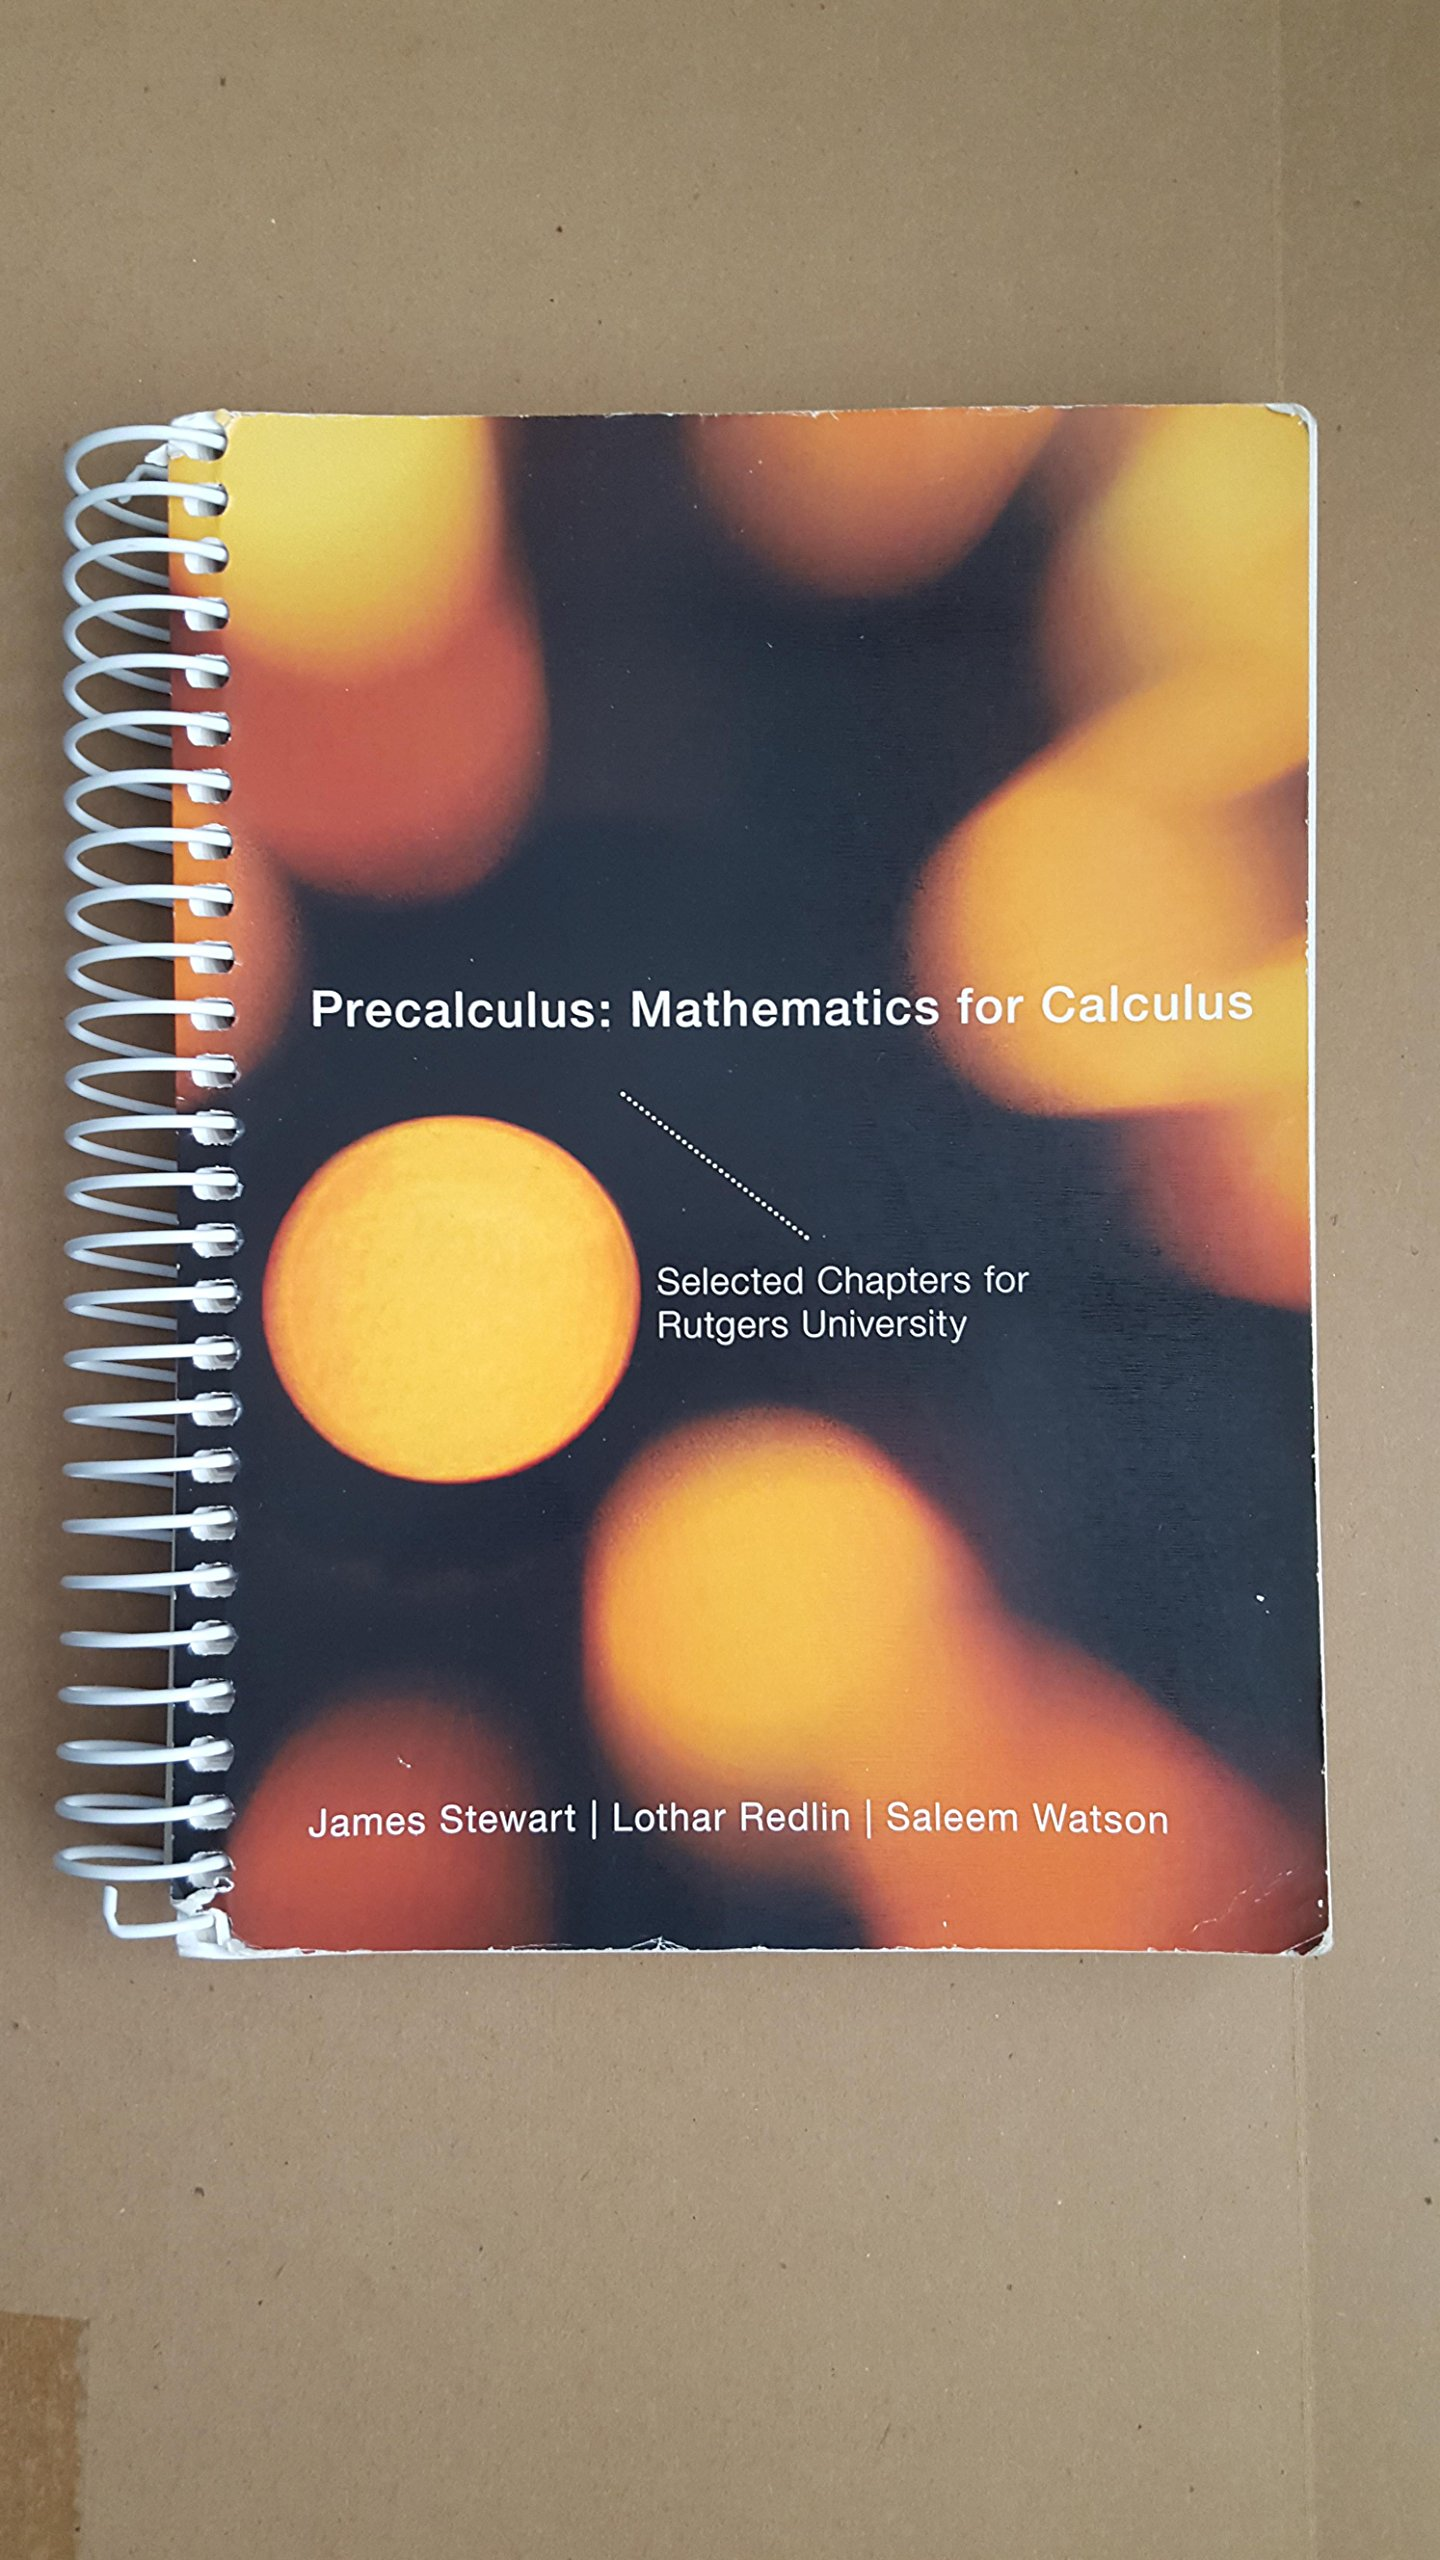 Precalculus: Mathematics for Calculus Selected Chapters for Rutgers University by Lothar Redlin, and Saleem Watson James Stewart (2012-05-03)